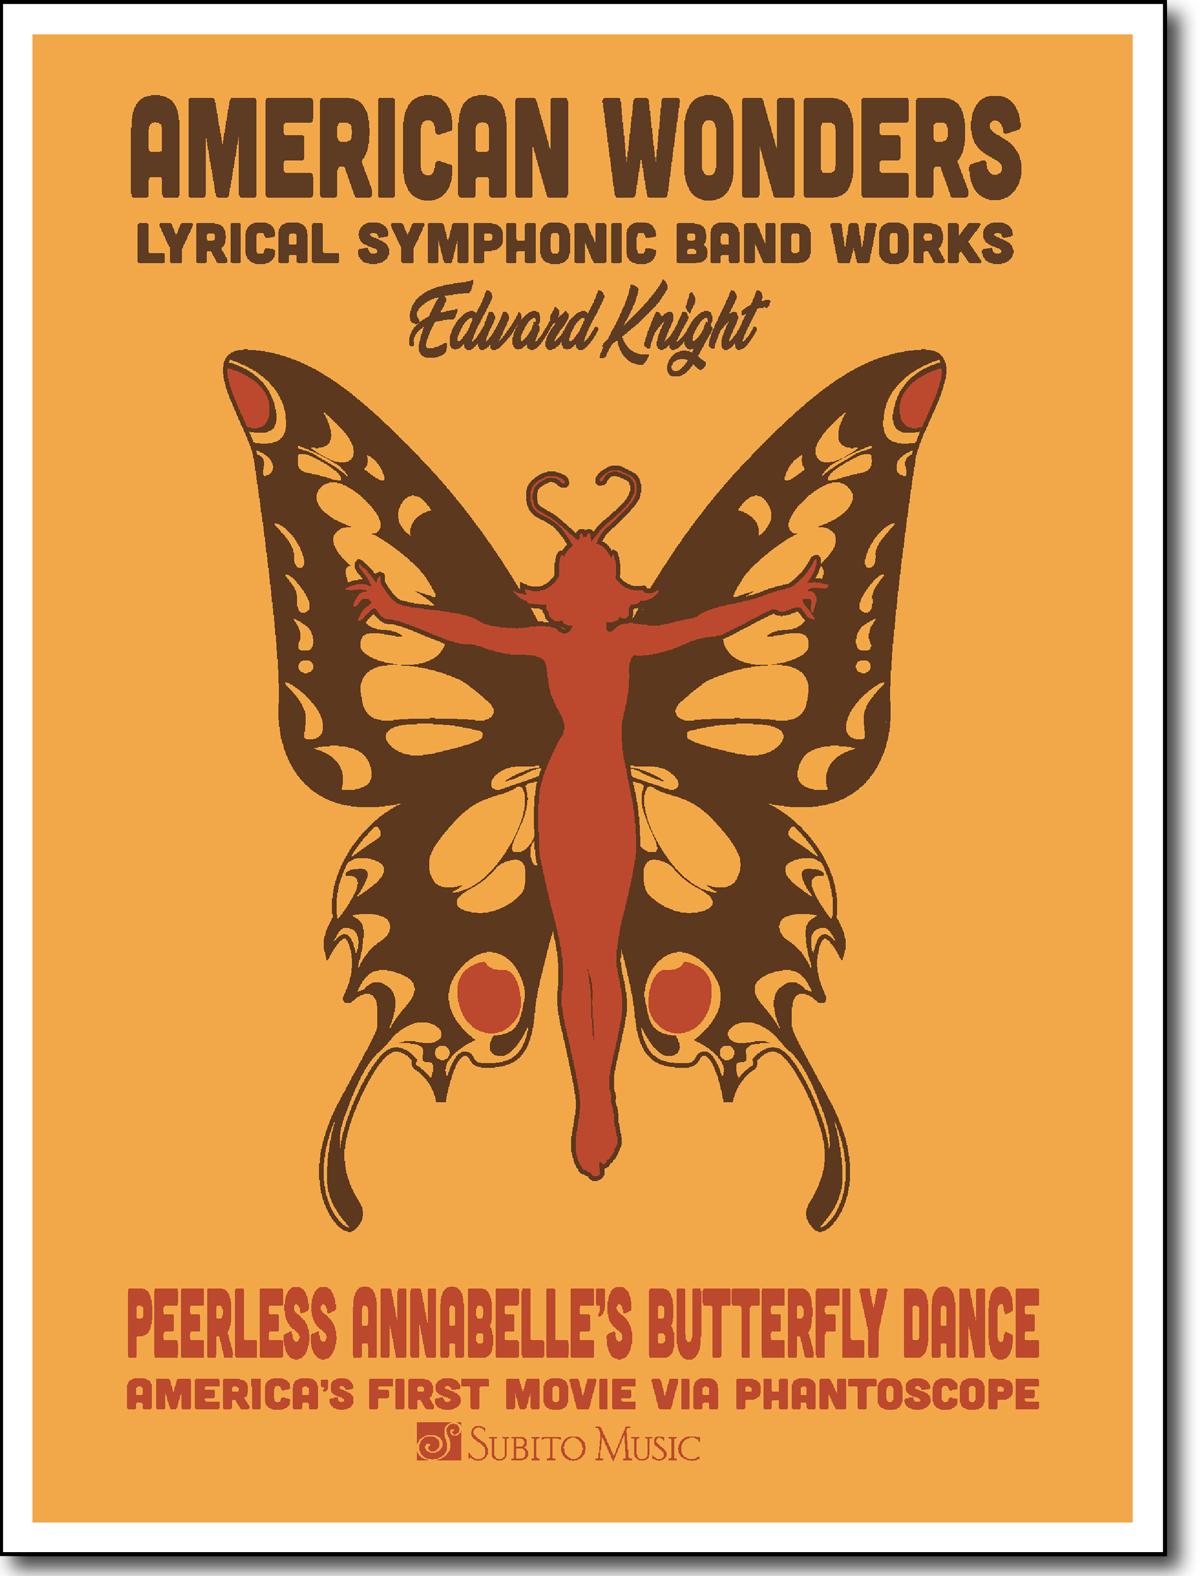 American Wonders: Peerless Annabelle's Butterfly Dance for Concert Band